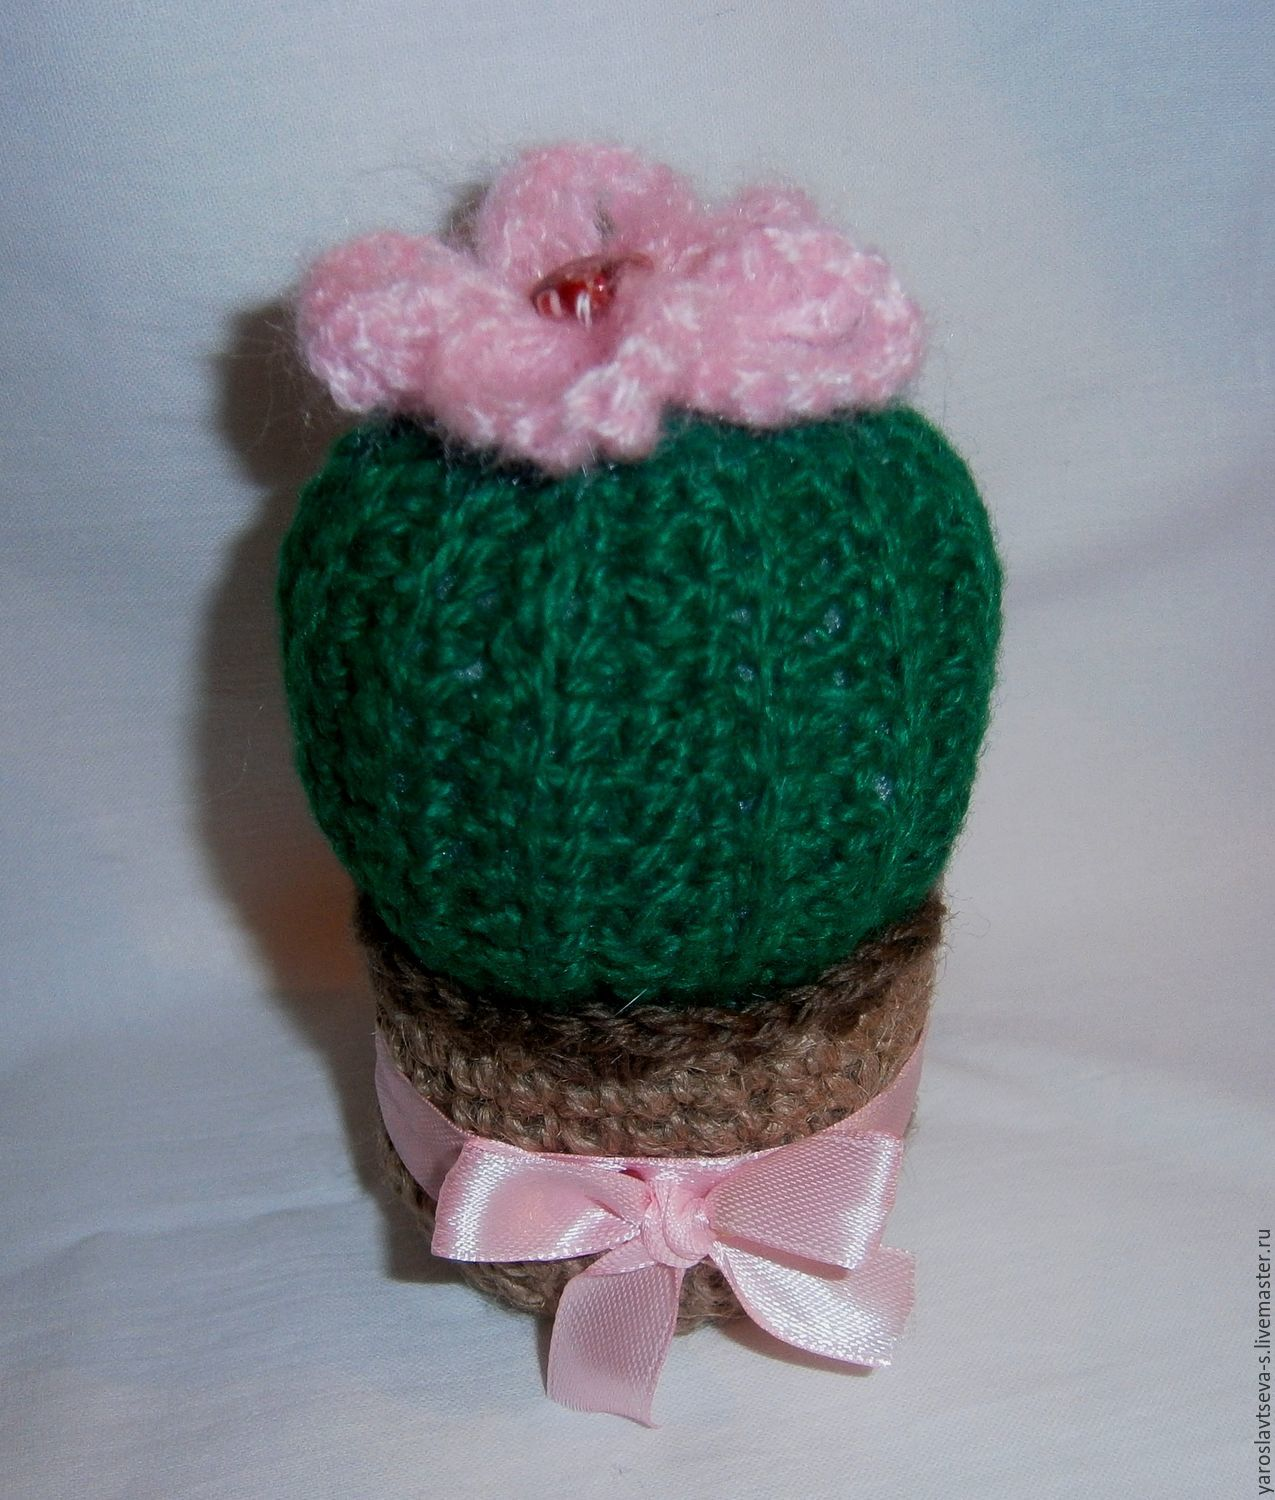 A Small Cactus Pincushion Shop Online On Livemaster With